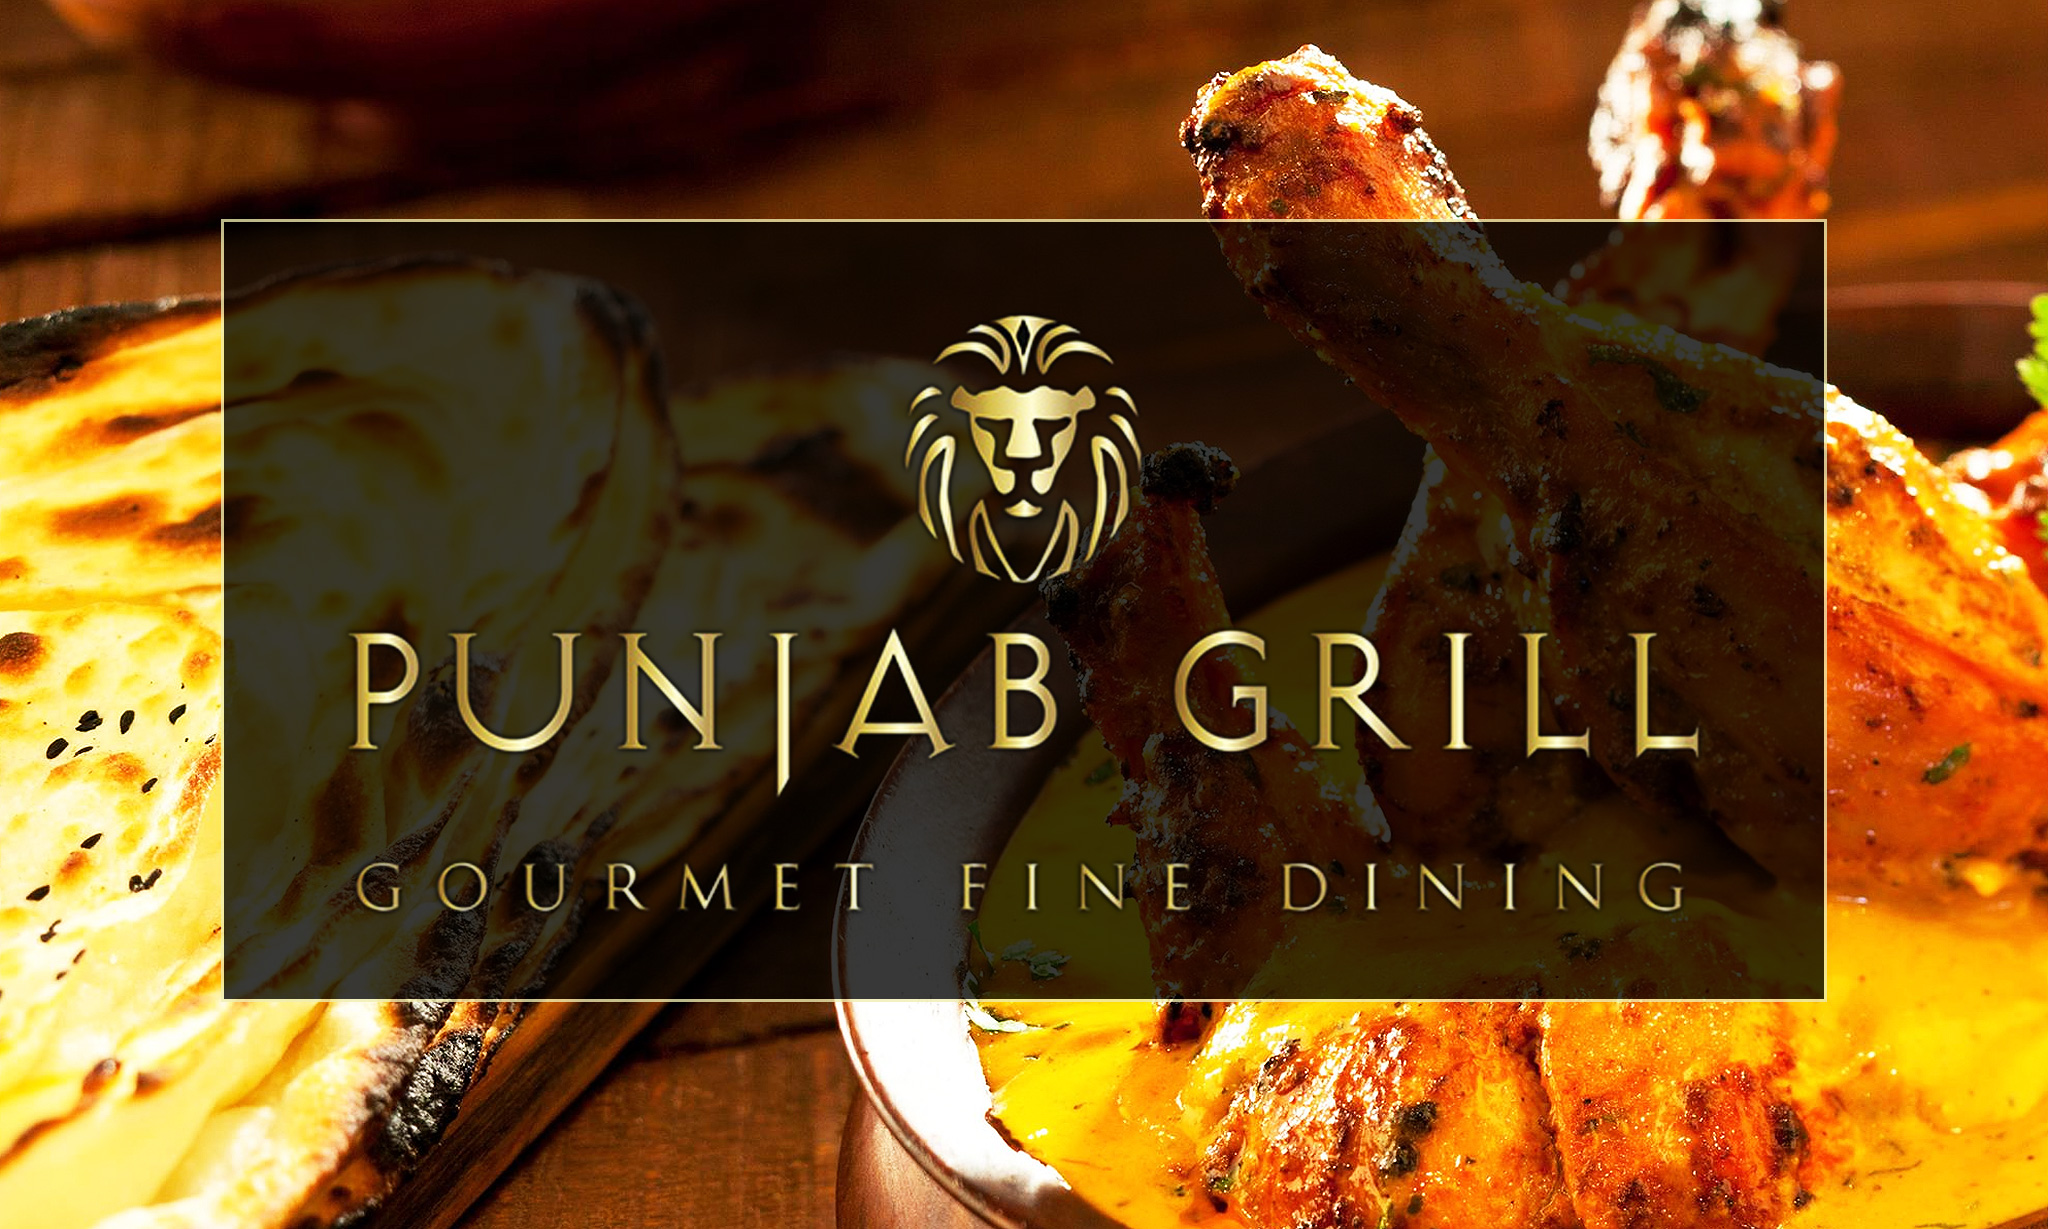 Punjab Grill @ 19% off at Rs 700